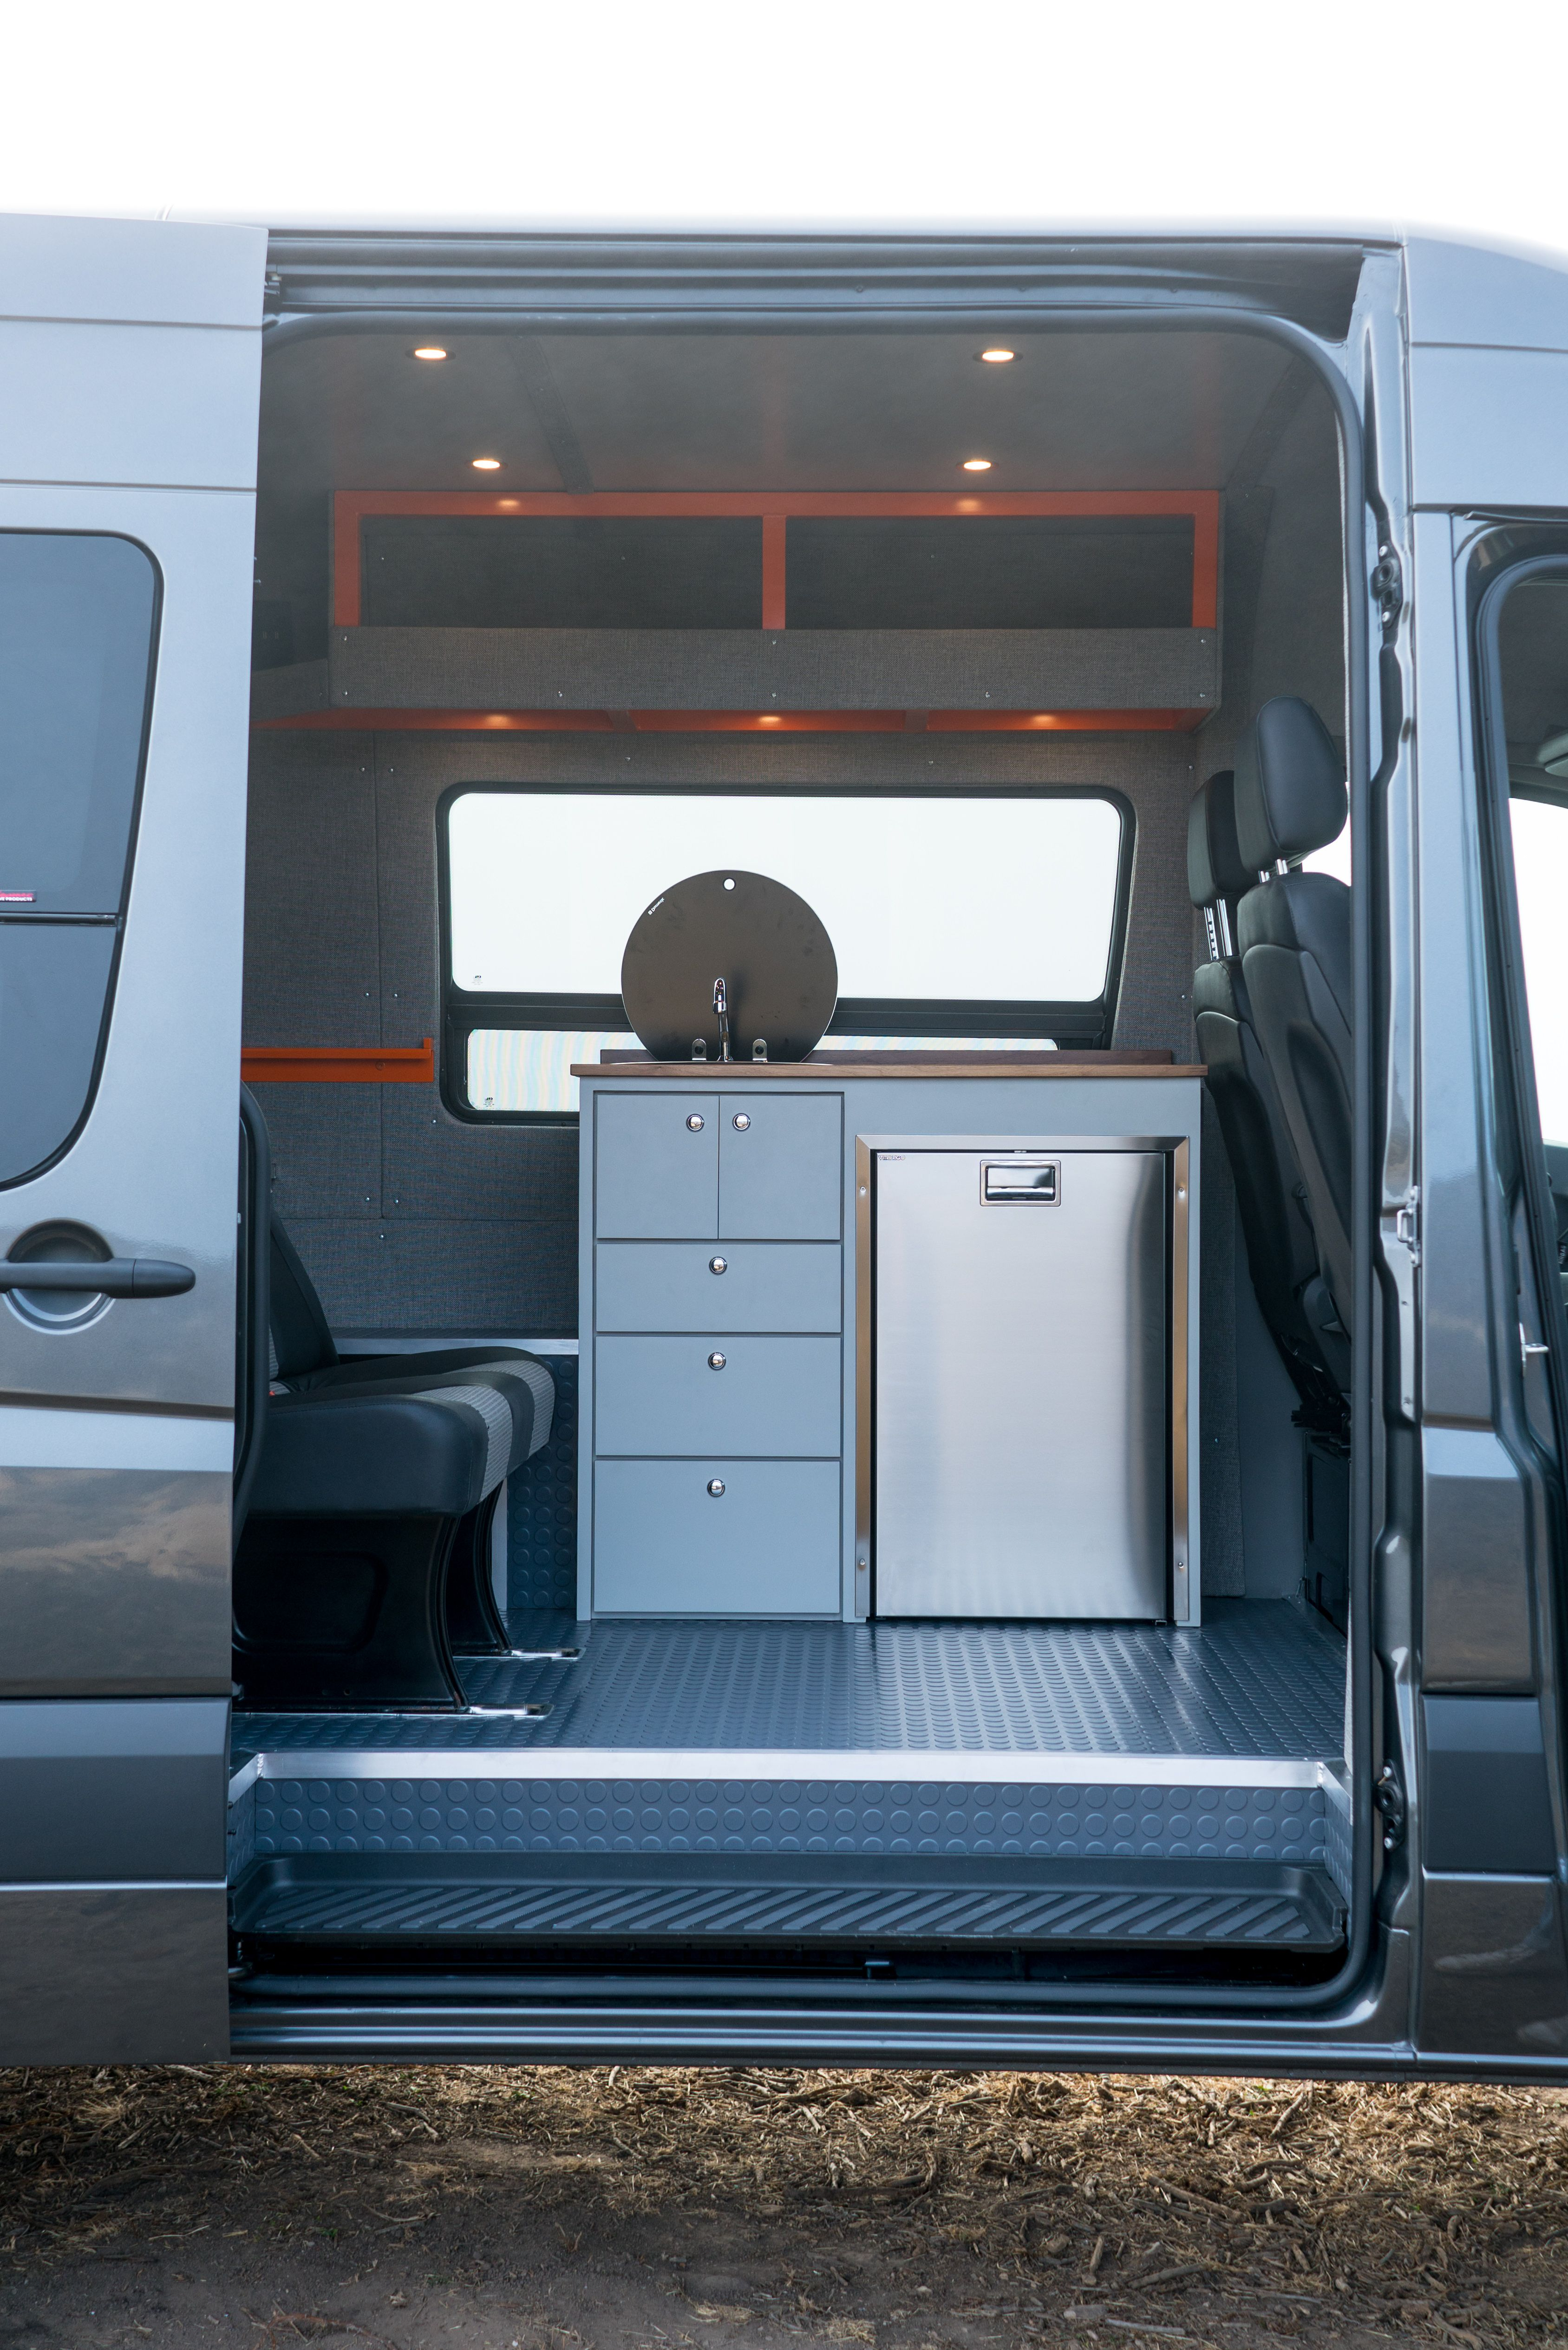 We Are A Van Conversion Company Specializing In Building Custom Vans For Our Customers Needs Curate Life Stories Sell Important